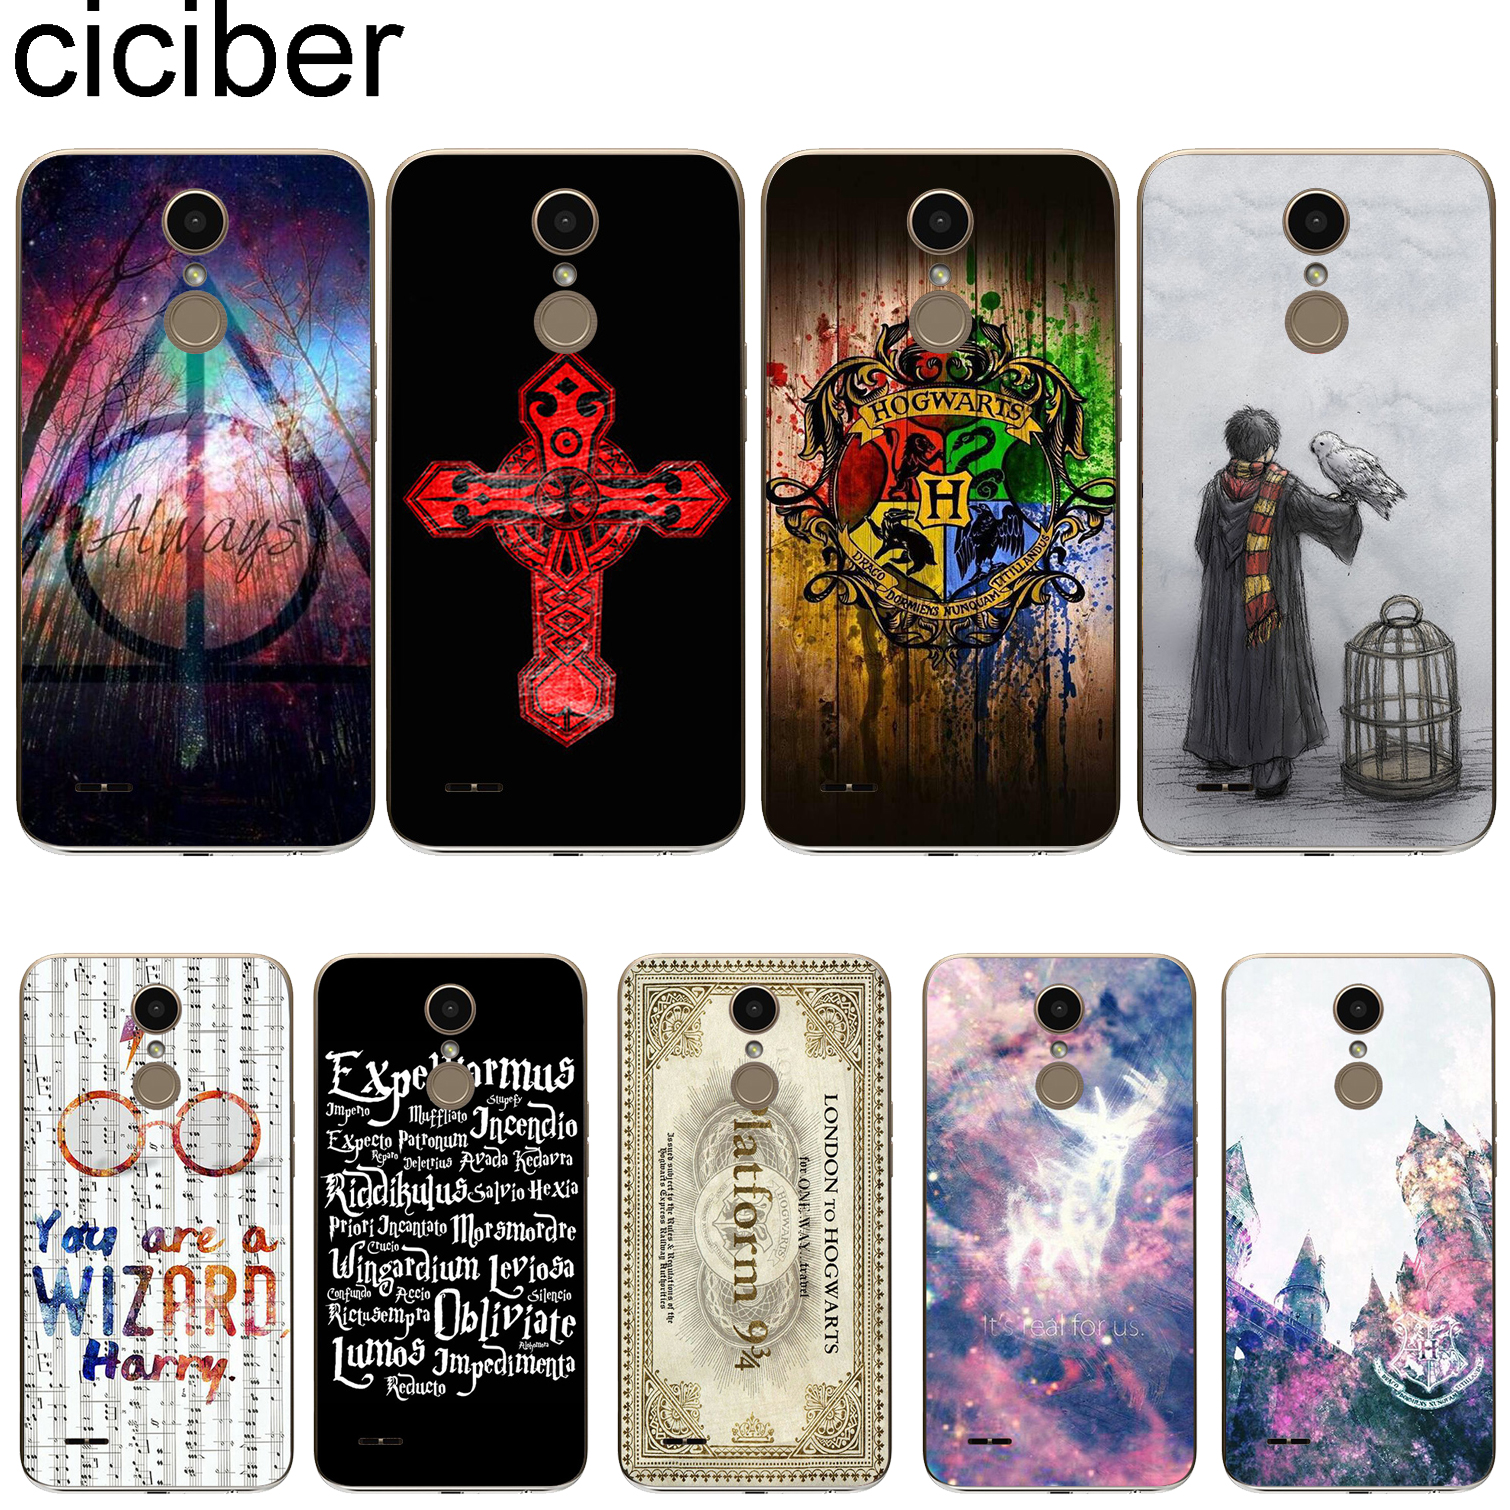 ciciber For LG G7 G6 G5 G4 V40 V35 V30 V20 THINQ Soft Phone Case Cover Clear For LG K8 K10 K4 K7 2017 2018 K9 K11 + Harry Potter